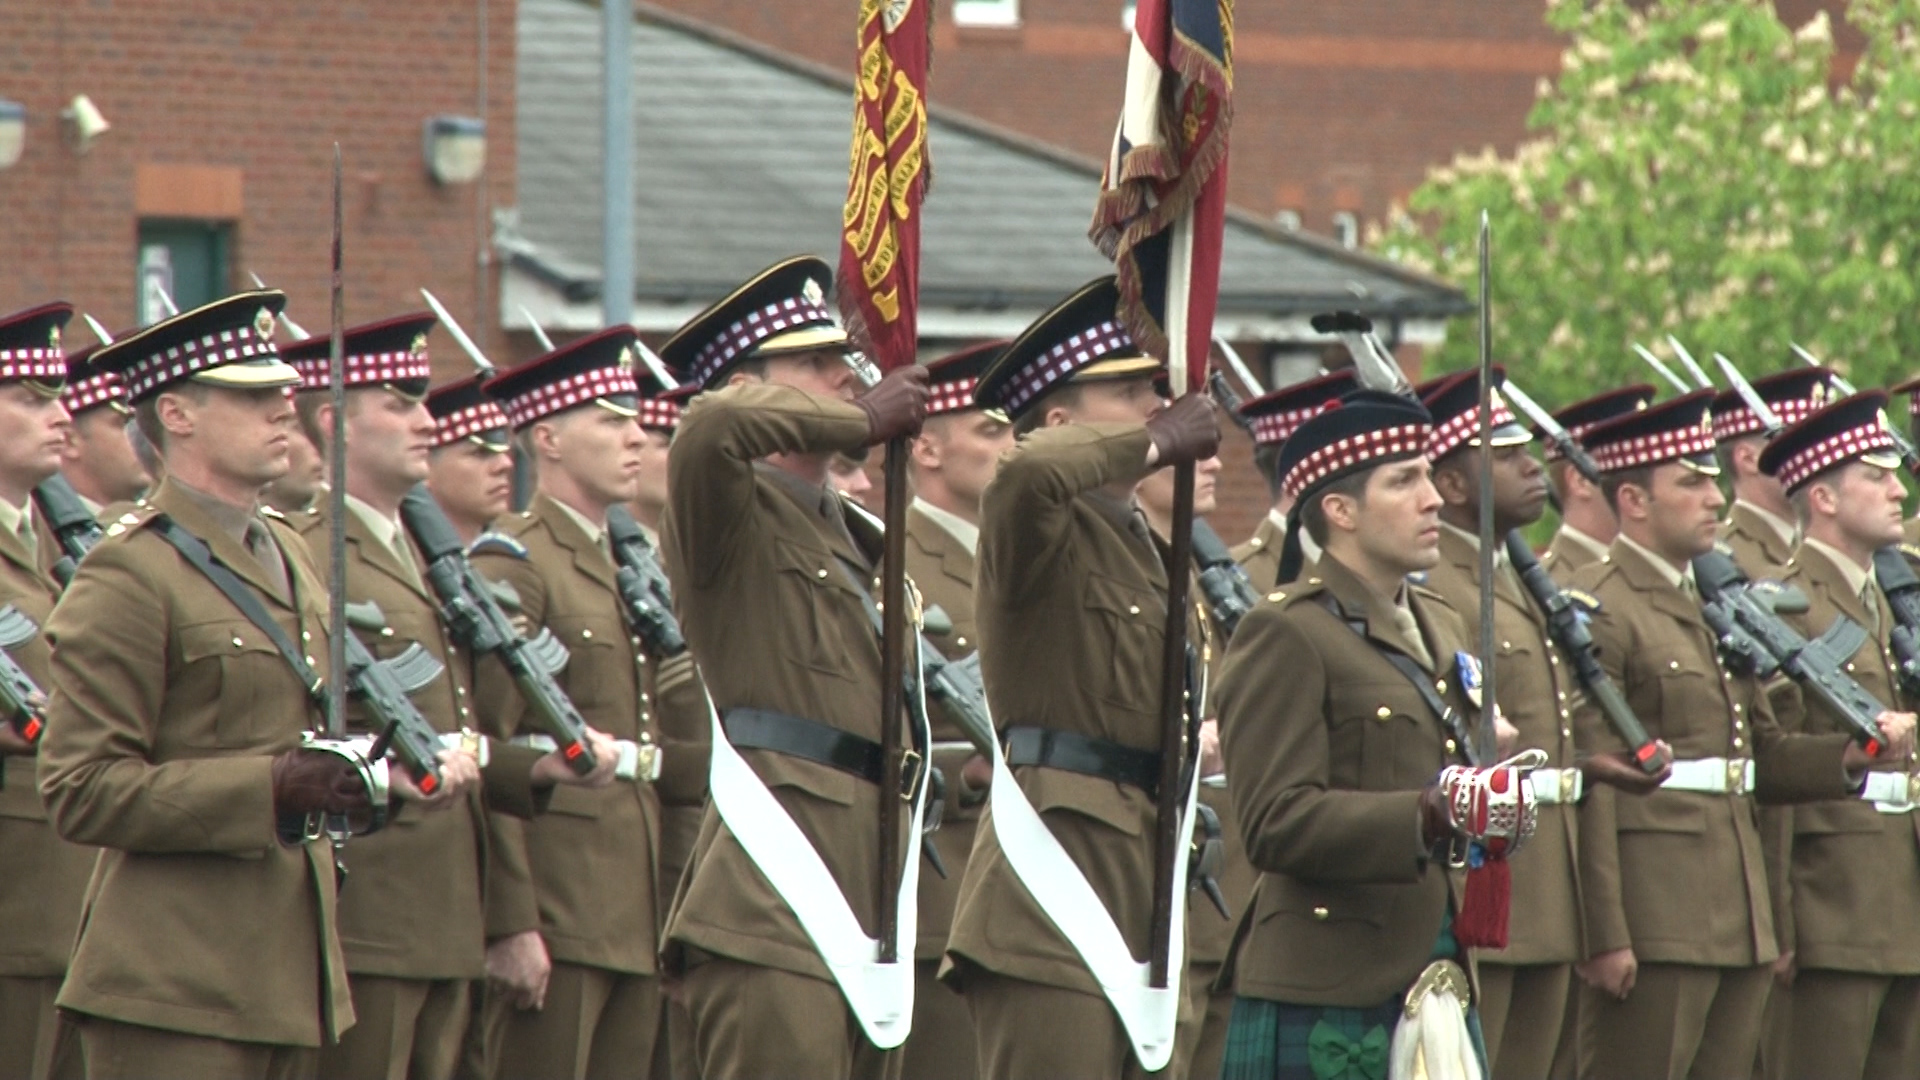 scots guards ready for appointment with the queen